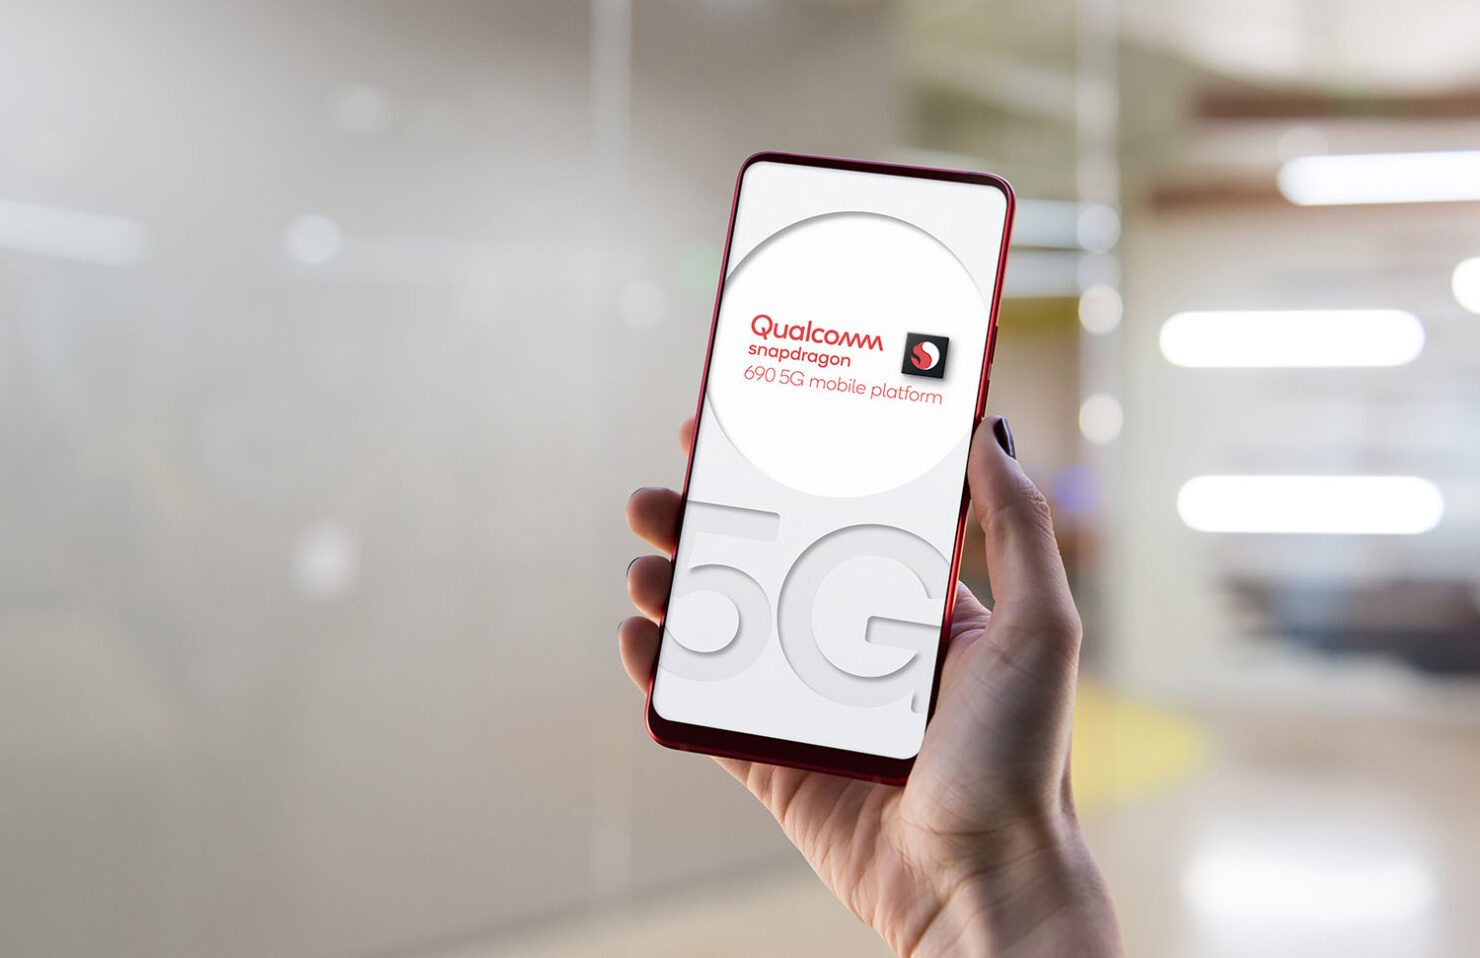 Qualcomm Snapdragon 690 Brings 5G, 120Hz Refresh Rate, & High-Resolution Camera Sensor Support to Mid-Rangers